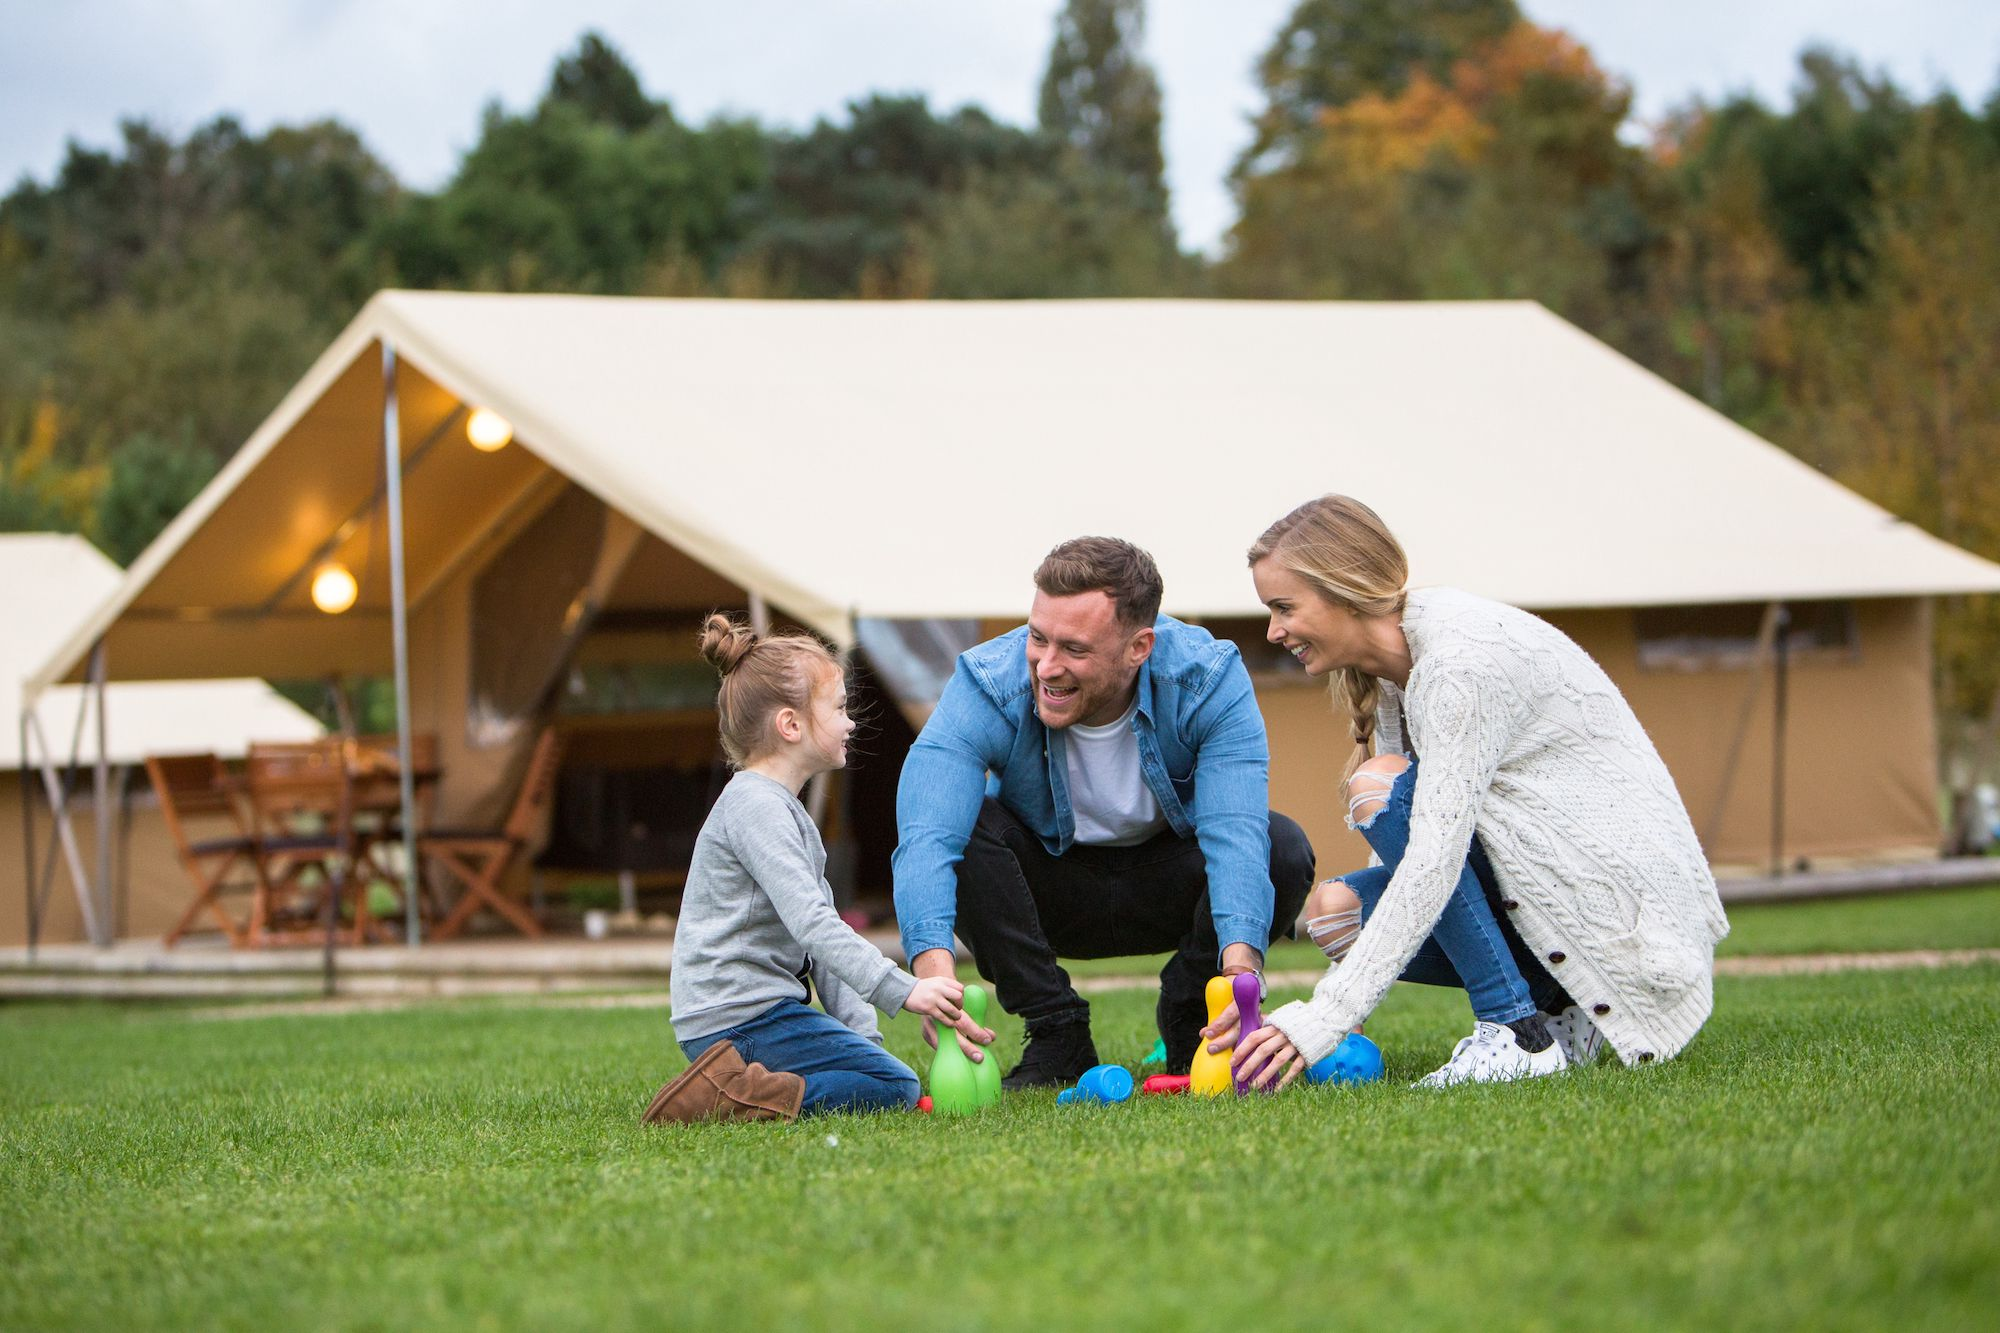 Campsites in Winchcombe holidays at I Love This Campsite